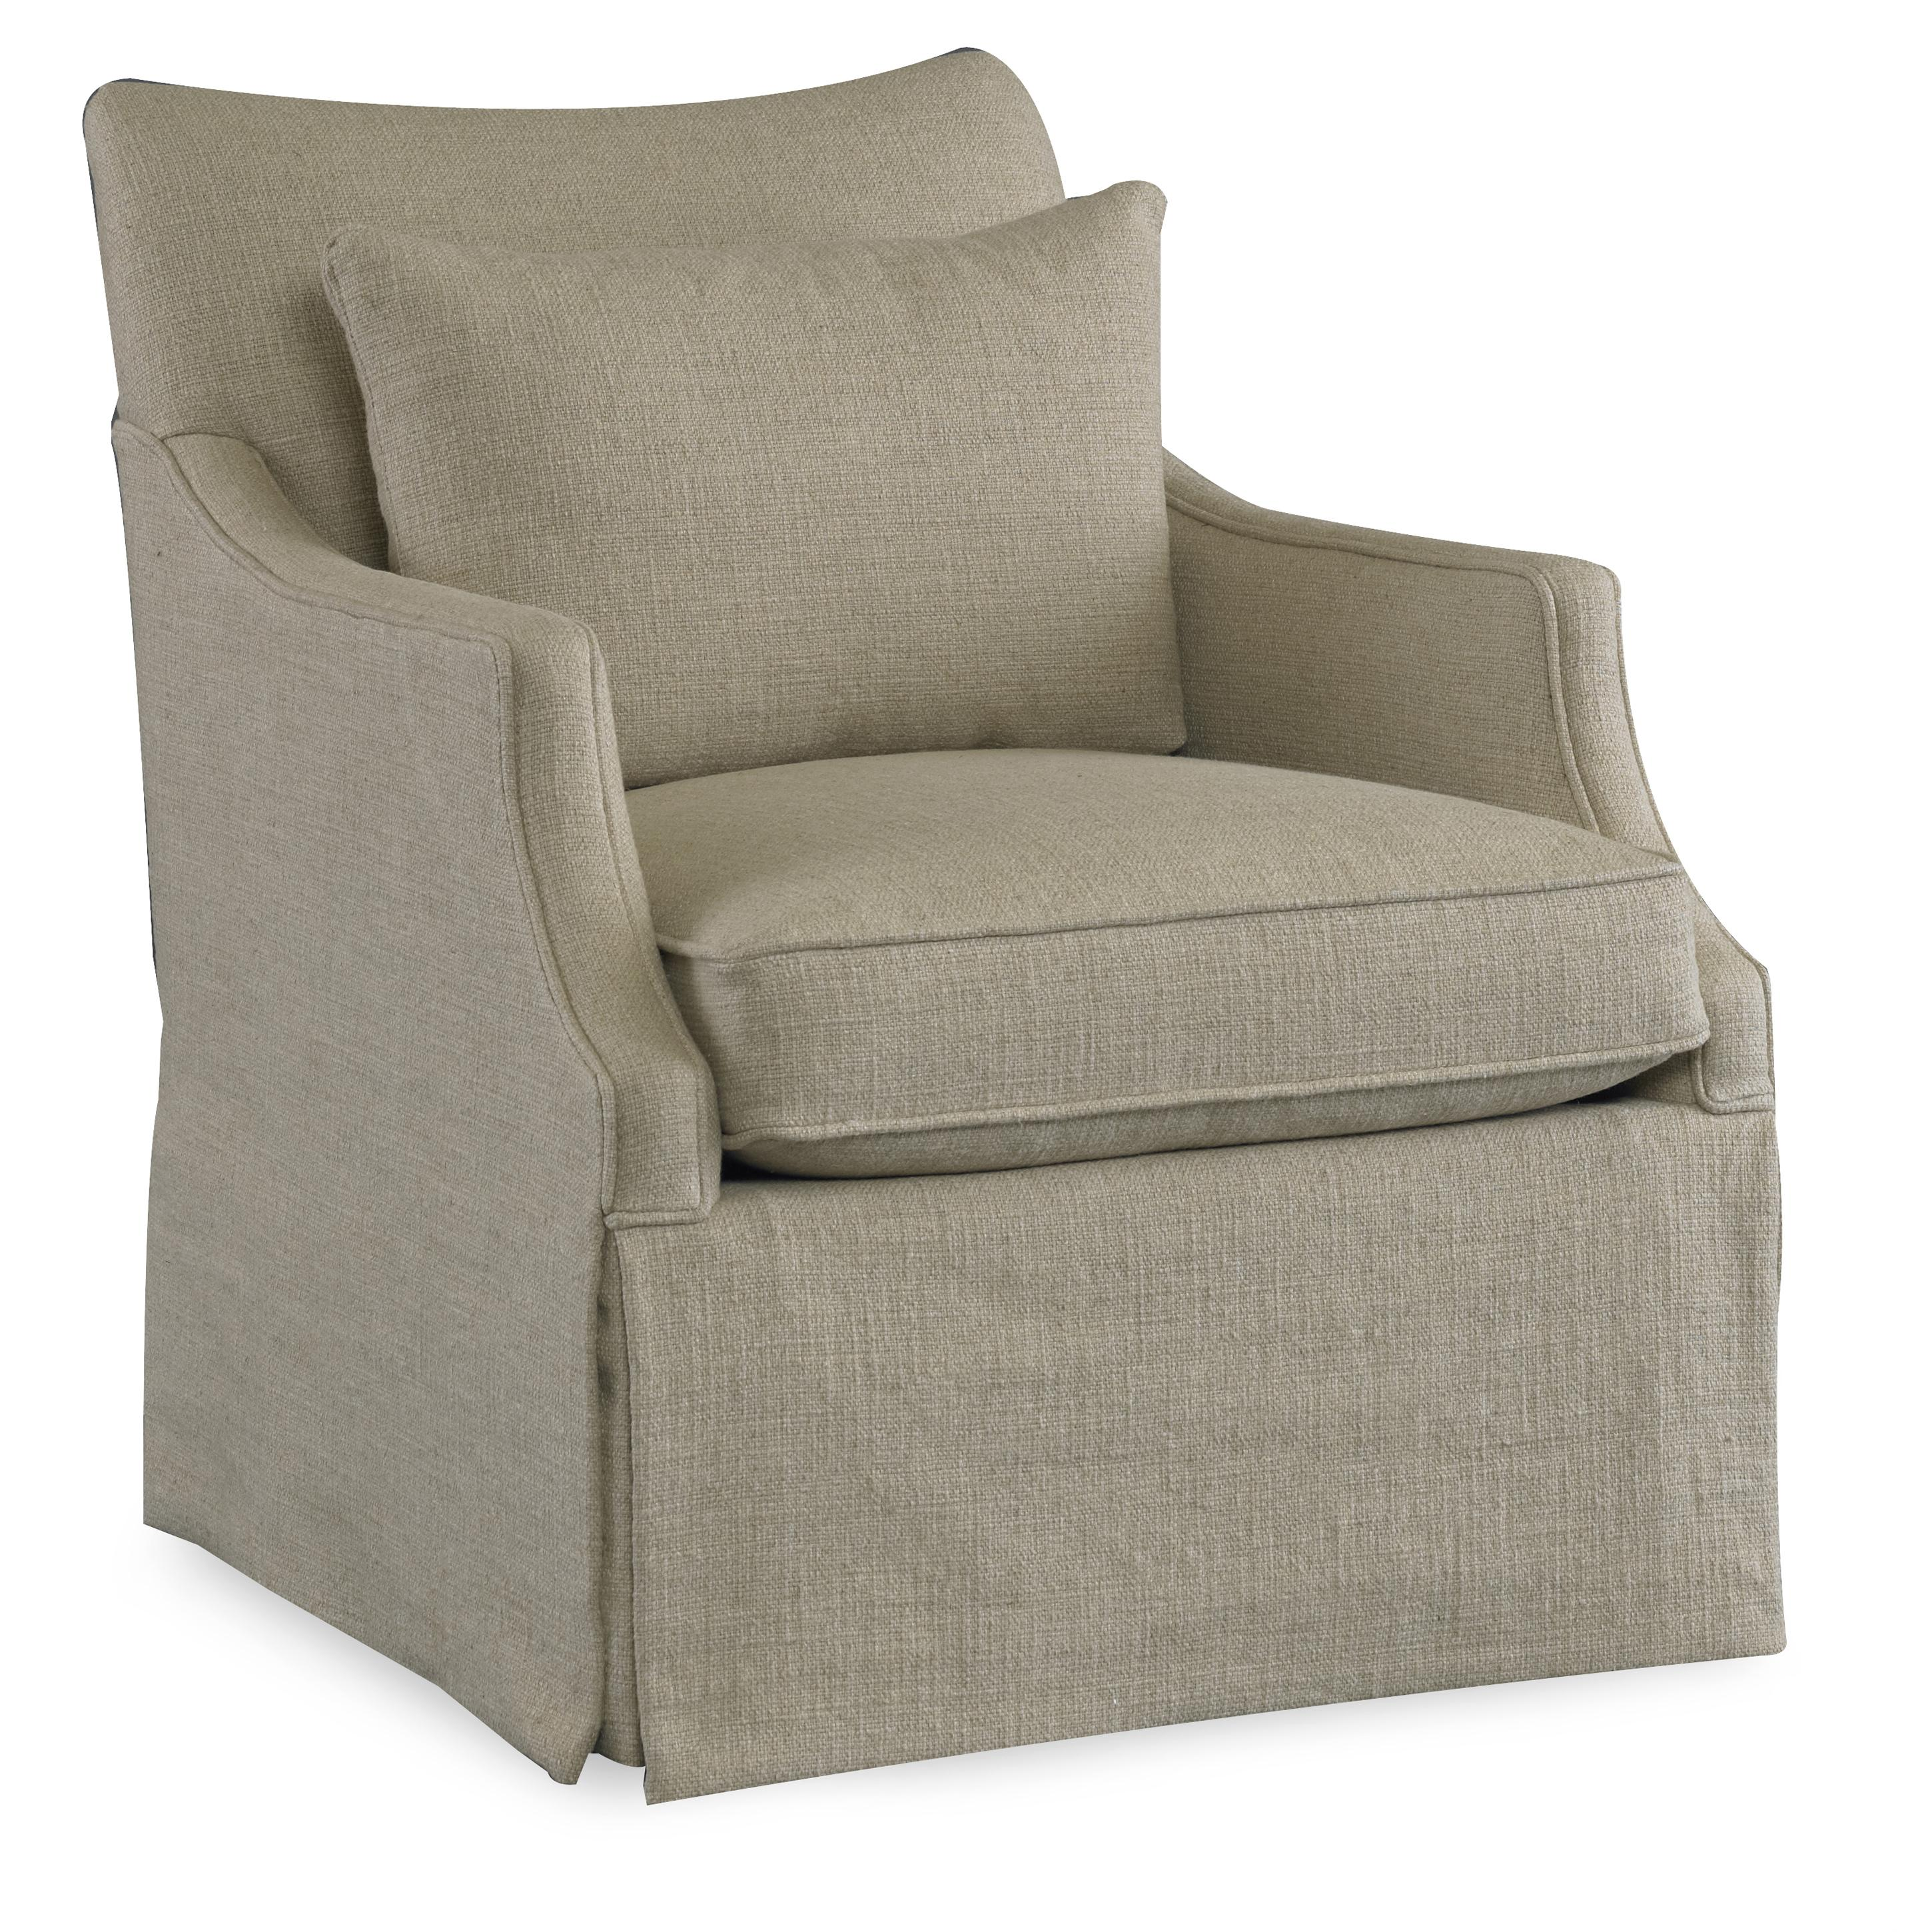 Sam Moore Azriel Casual Swivel Glider Chair With English